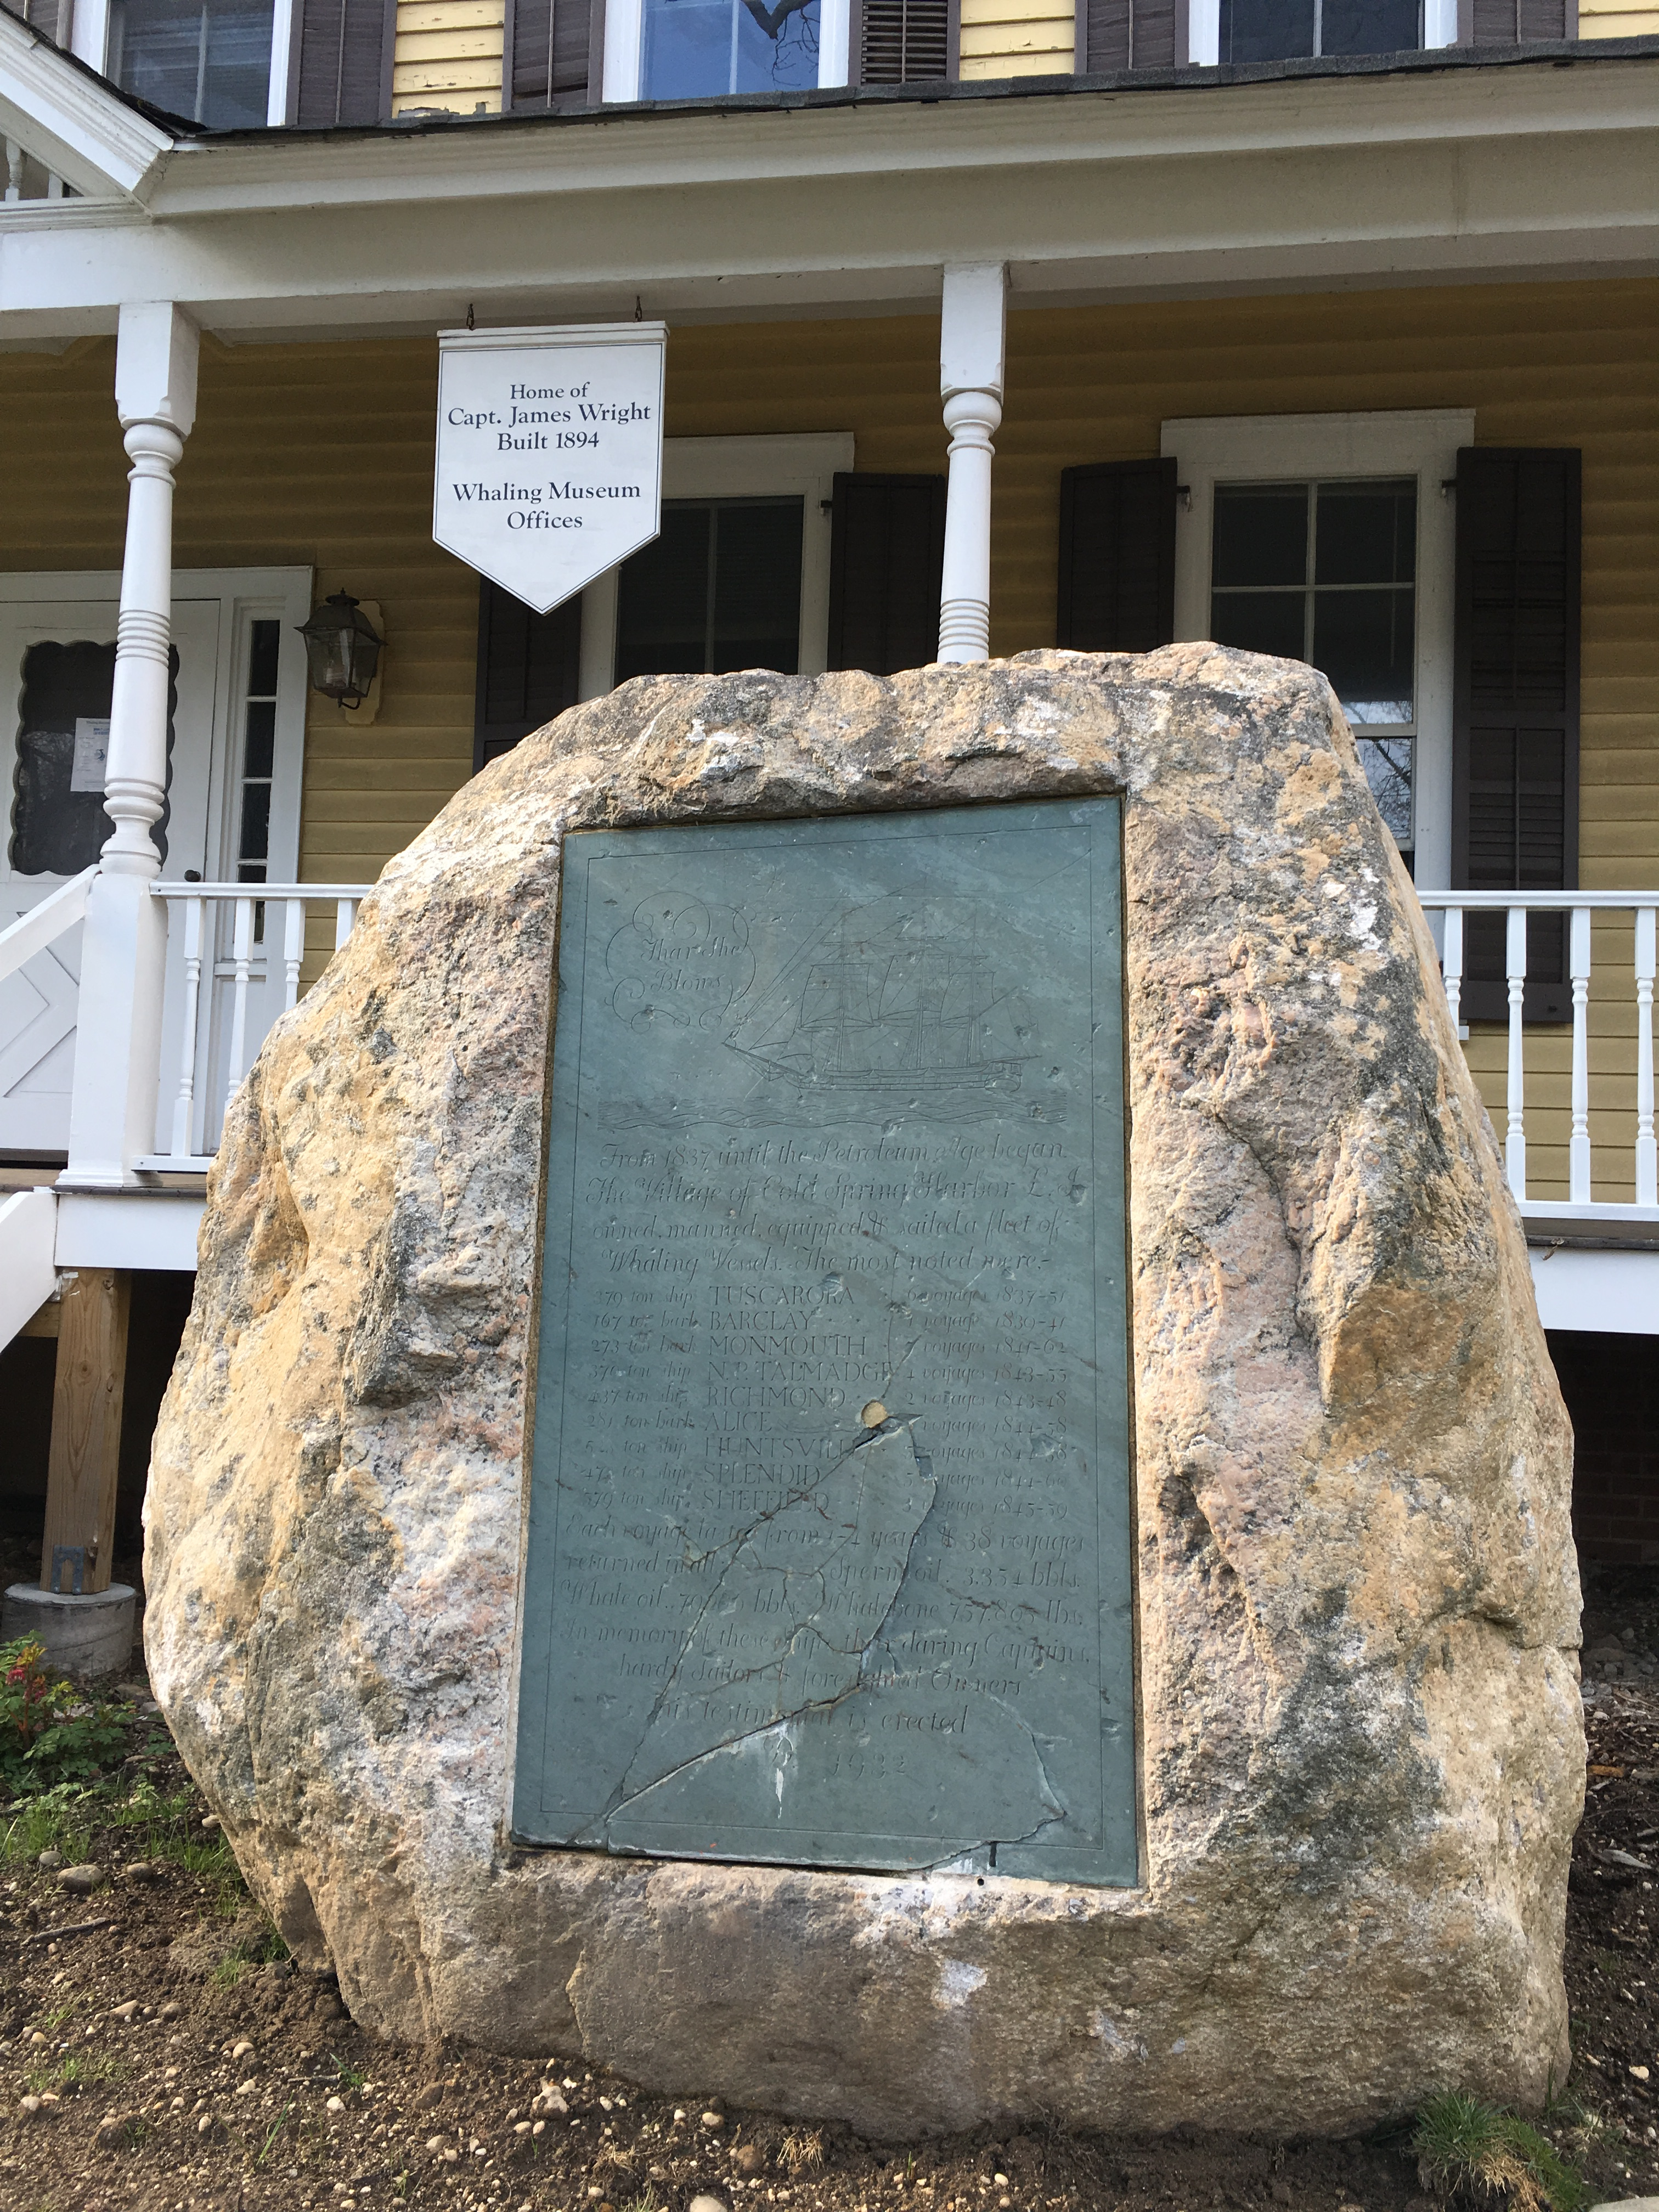 This boulder was dredged from the bottom of Cold Spring Harbor. It was originally placed in front of the odl Cold Spring Harbor library on Shore Road to commemorate the hamlet's whaling history. When the library moved from that location in the 1980s, the boulder was moved to the Whaling Museum.